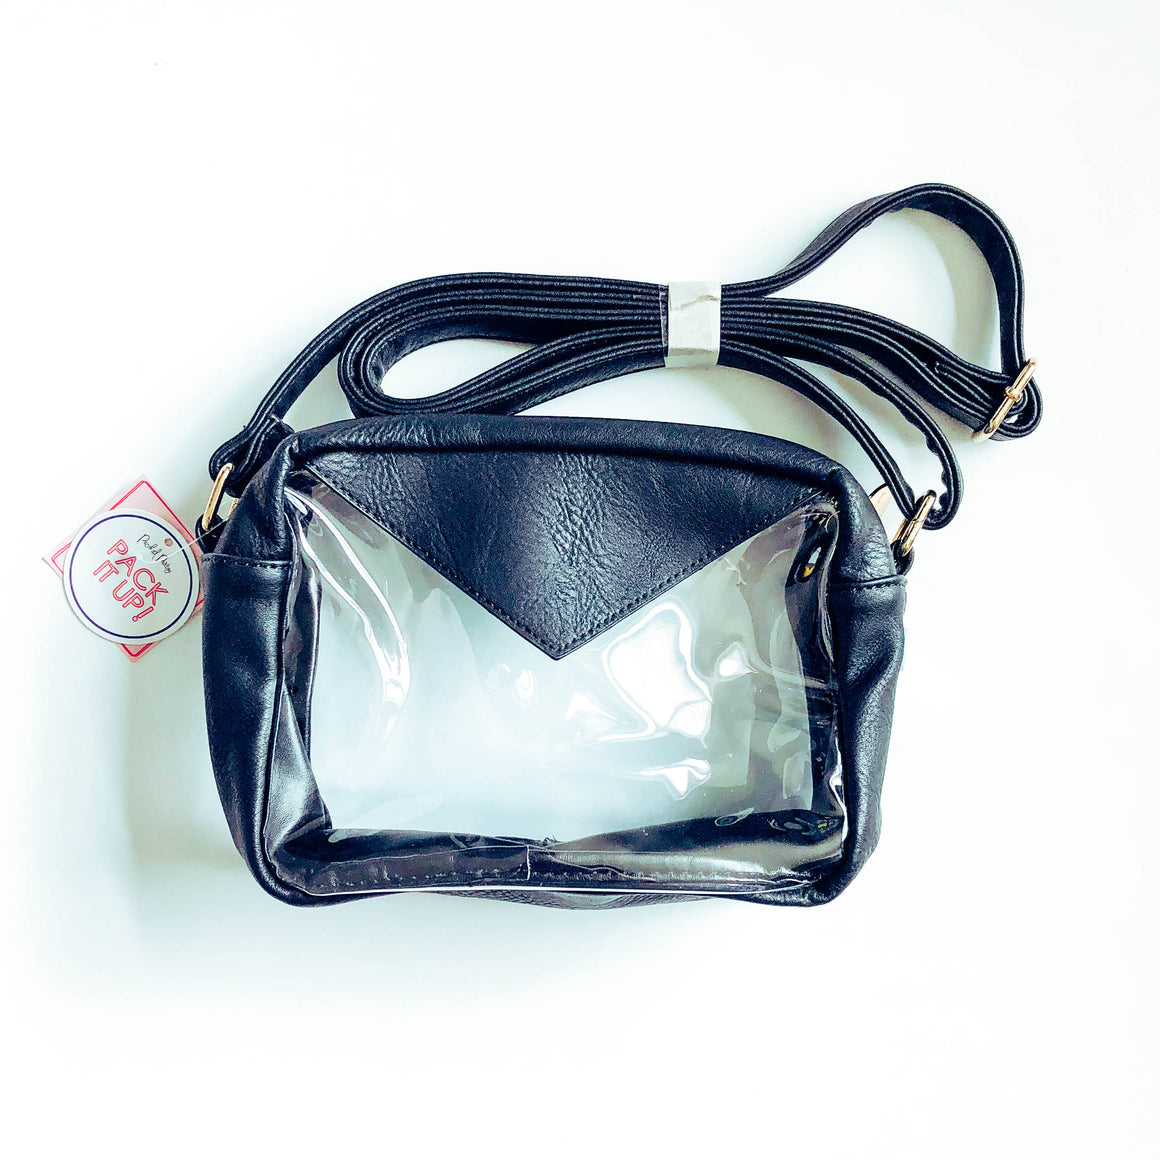 Stadium Crossbody Bag - Black